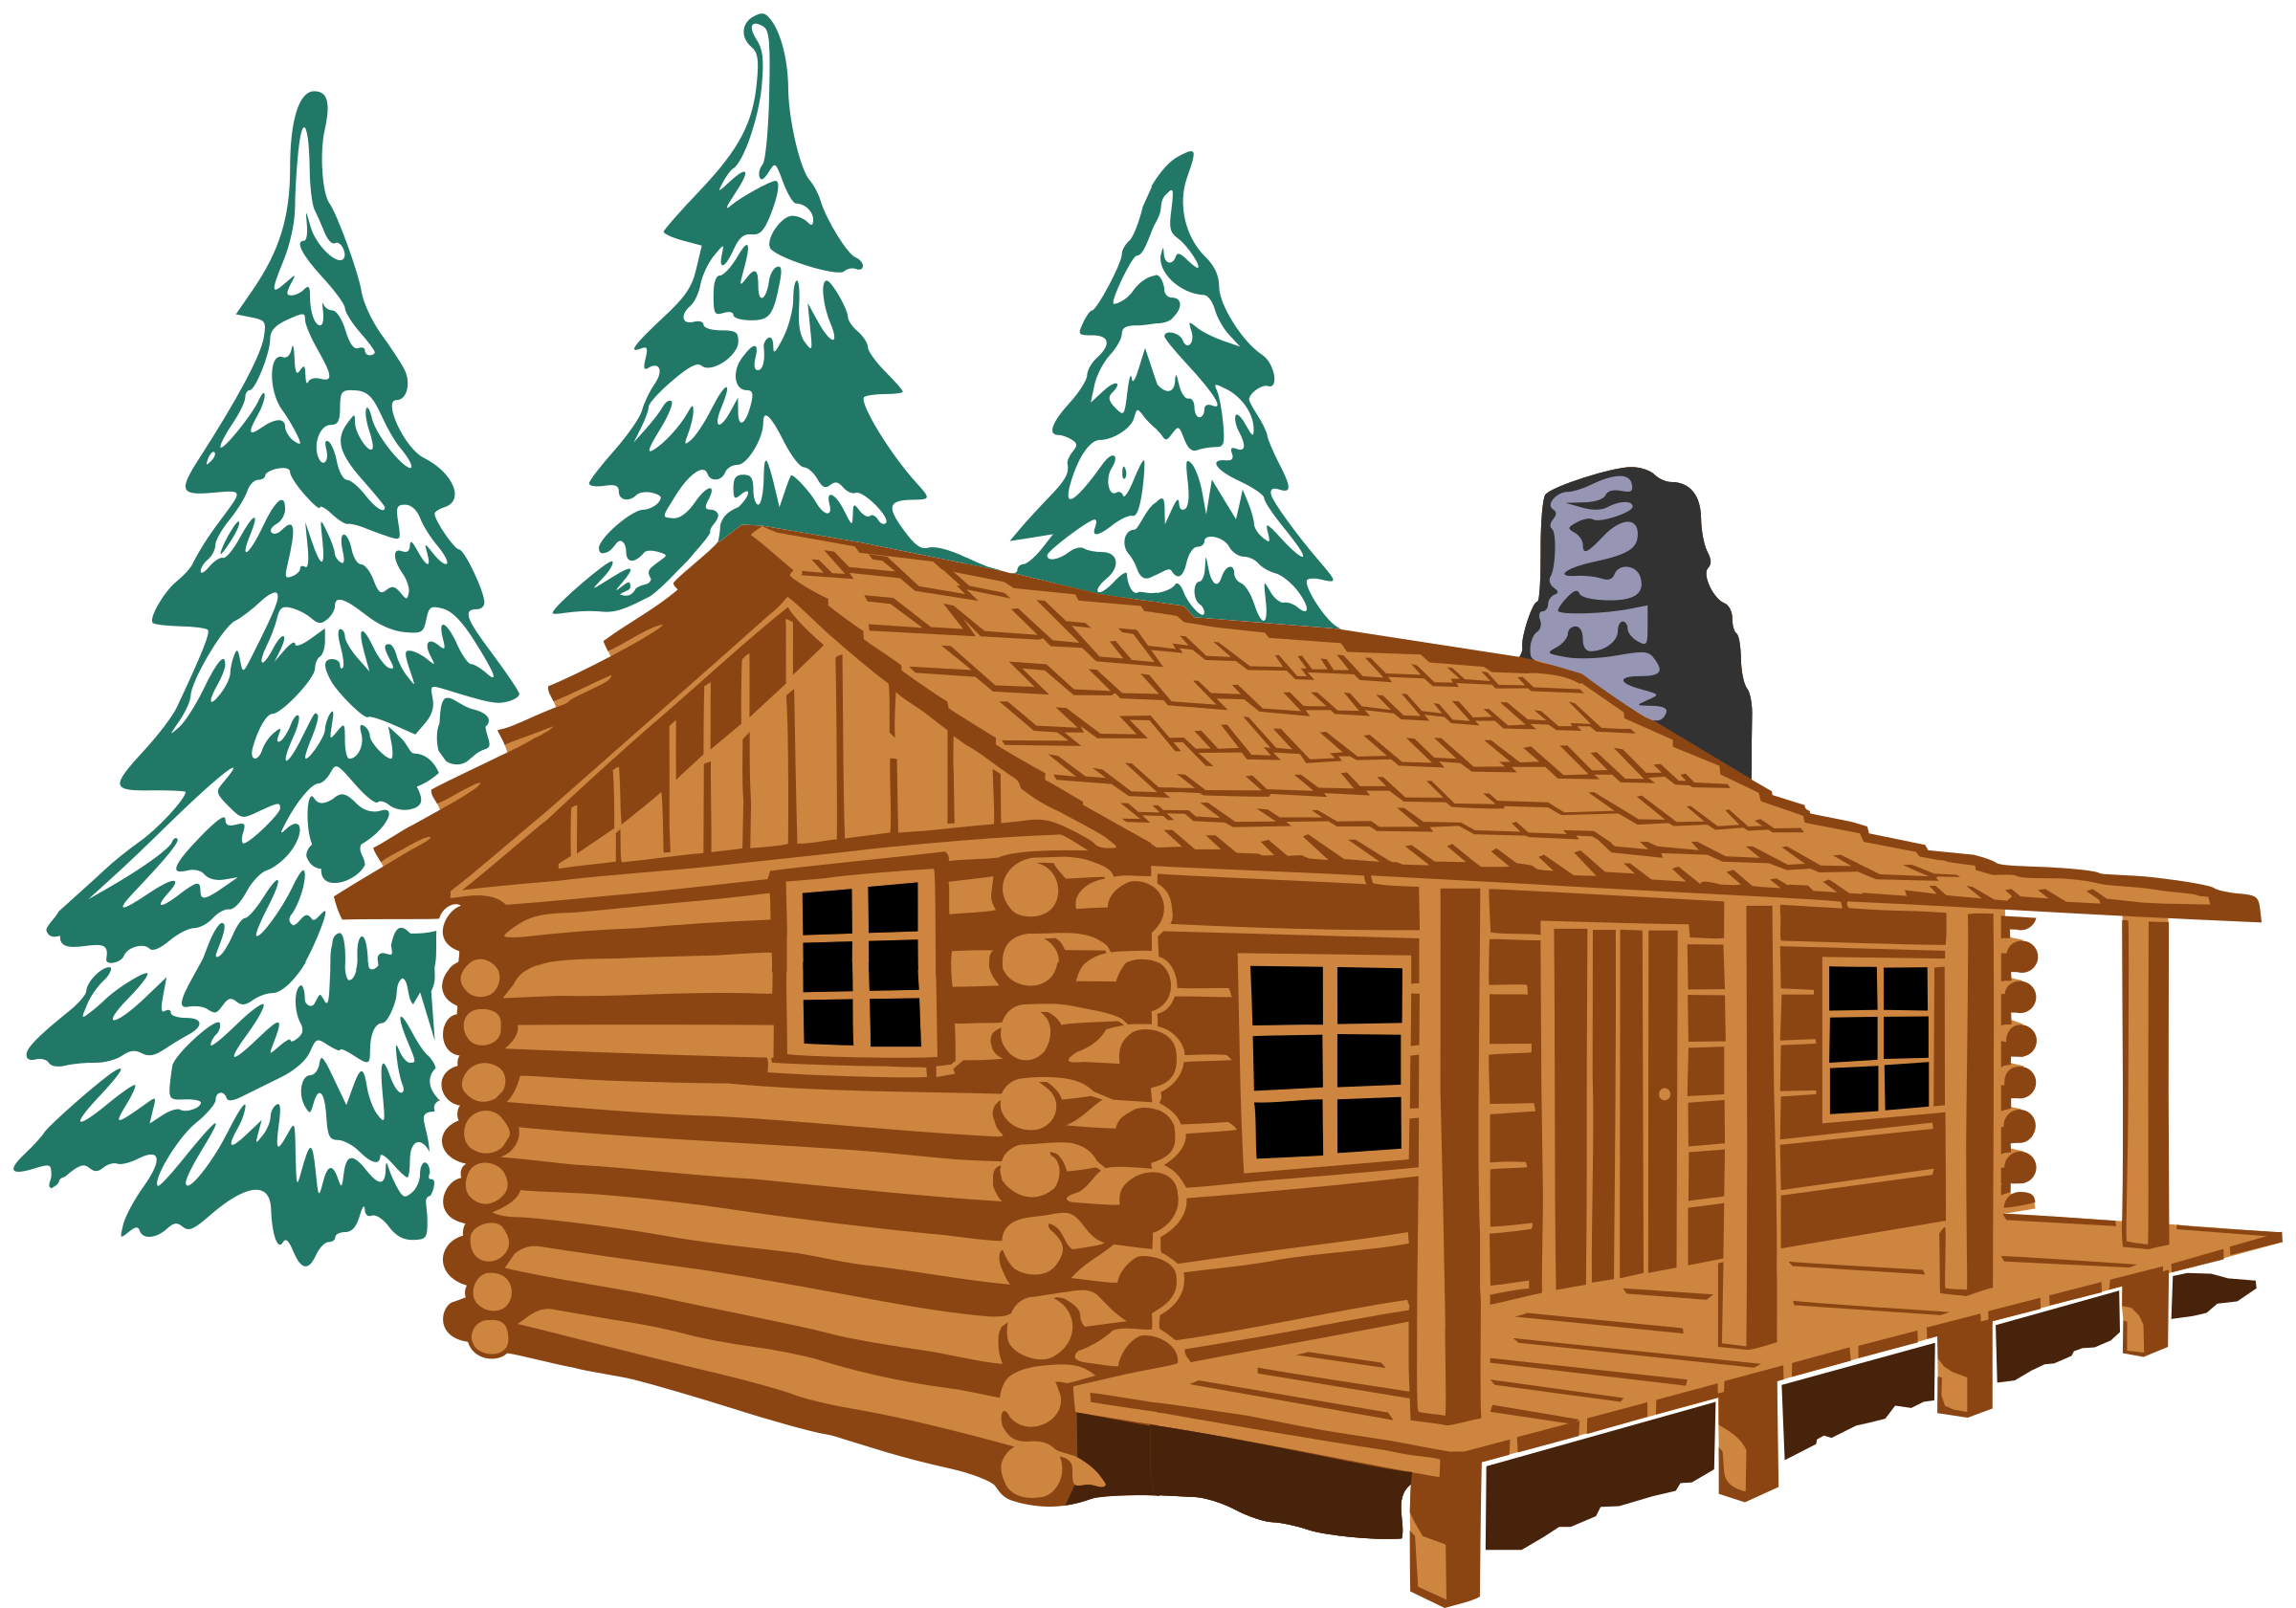 Big wooden house clipart png free stock Clipart - Cabin Hebrews 3 4 Remix png free stock